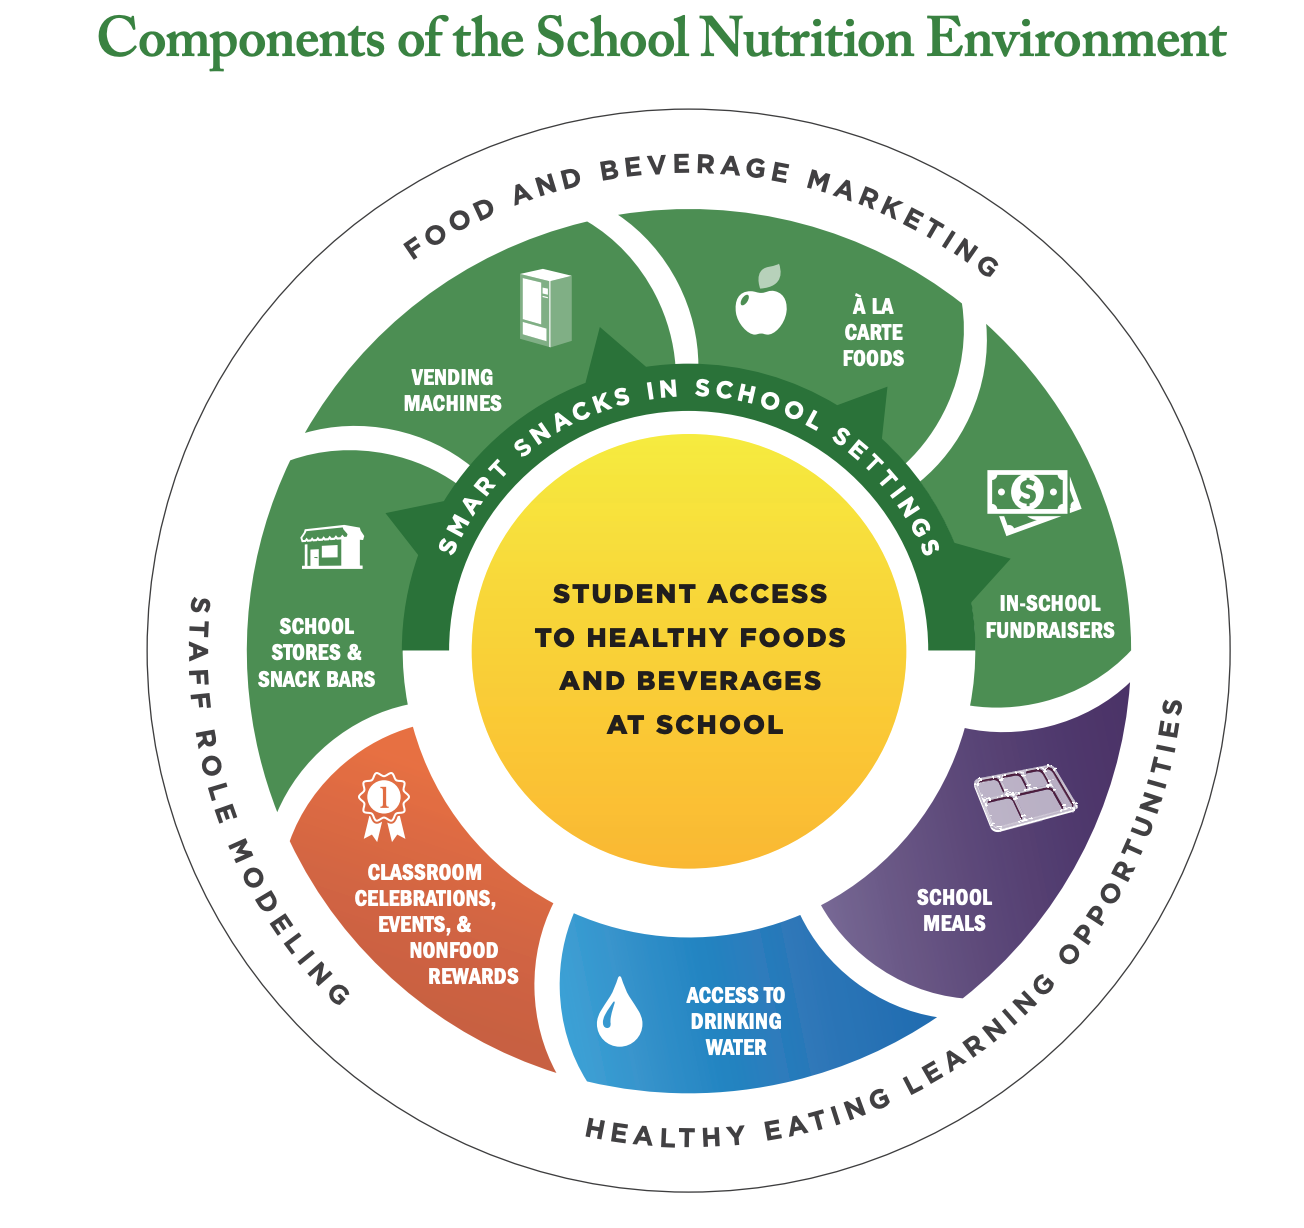 Image of the Components of School Nutrition Environments